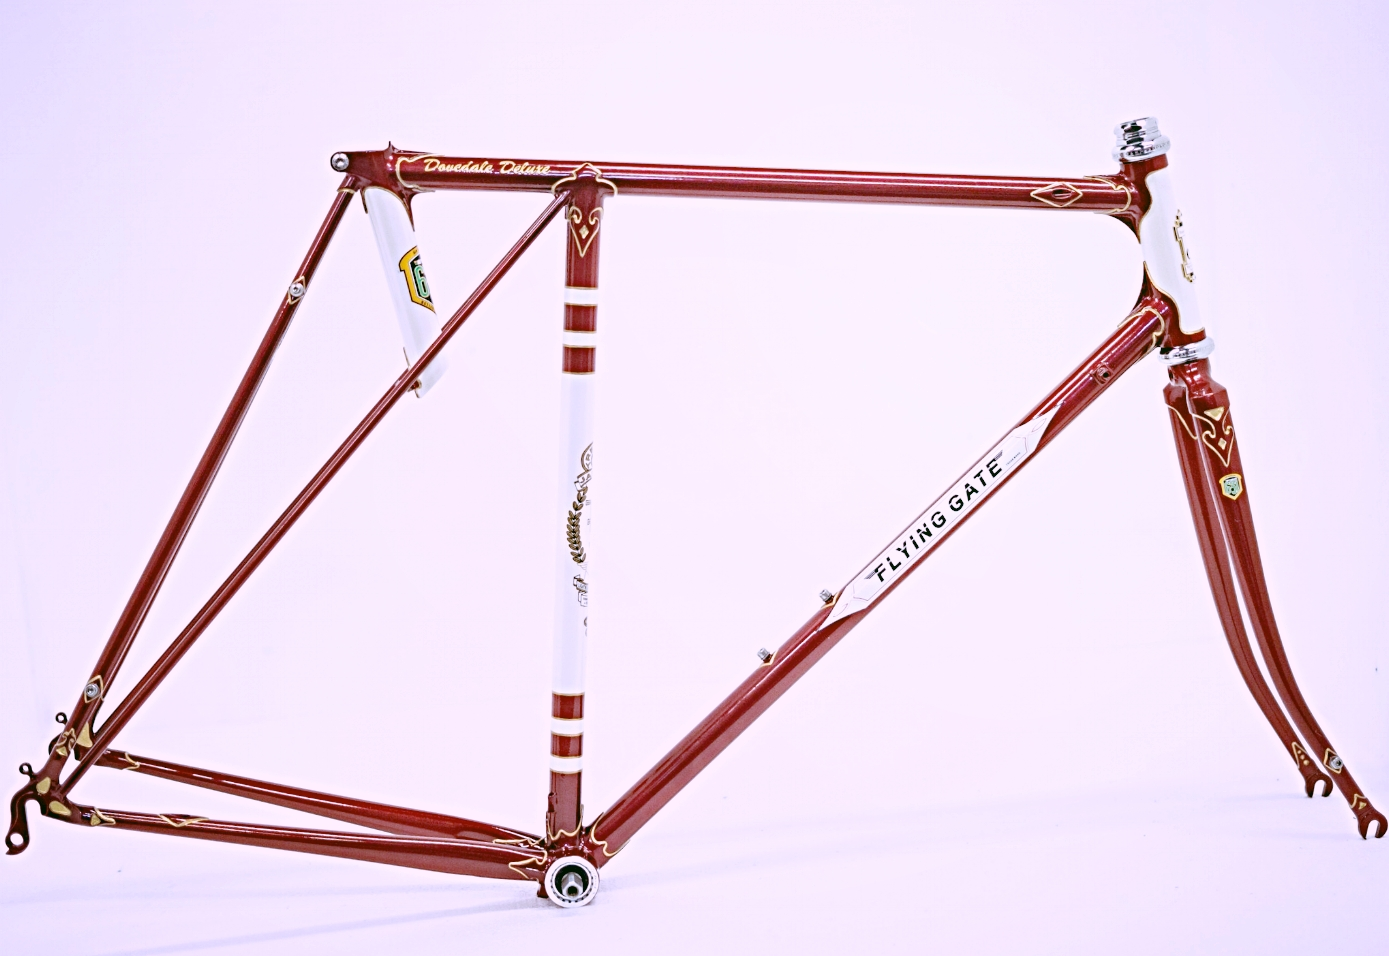 Handbuilt in Reynolds 631 - Dovedale Deluxe featuring concealed brake and gear cable routing. Flam ruby with pearl white panels and gold luglining. Photos  Jonny Keeley .